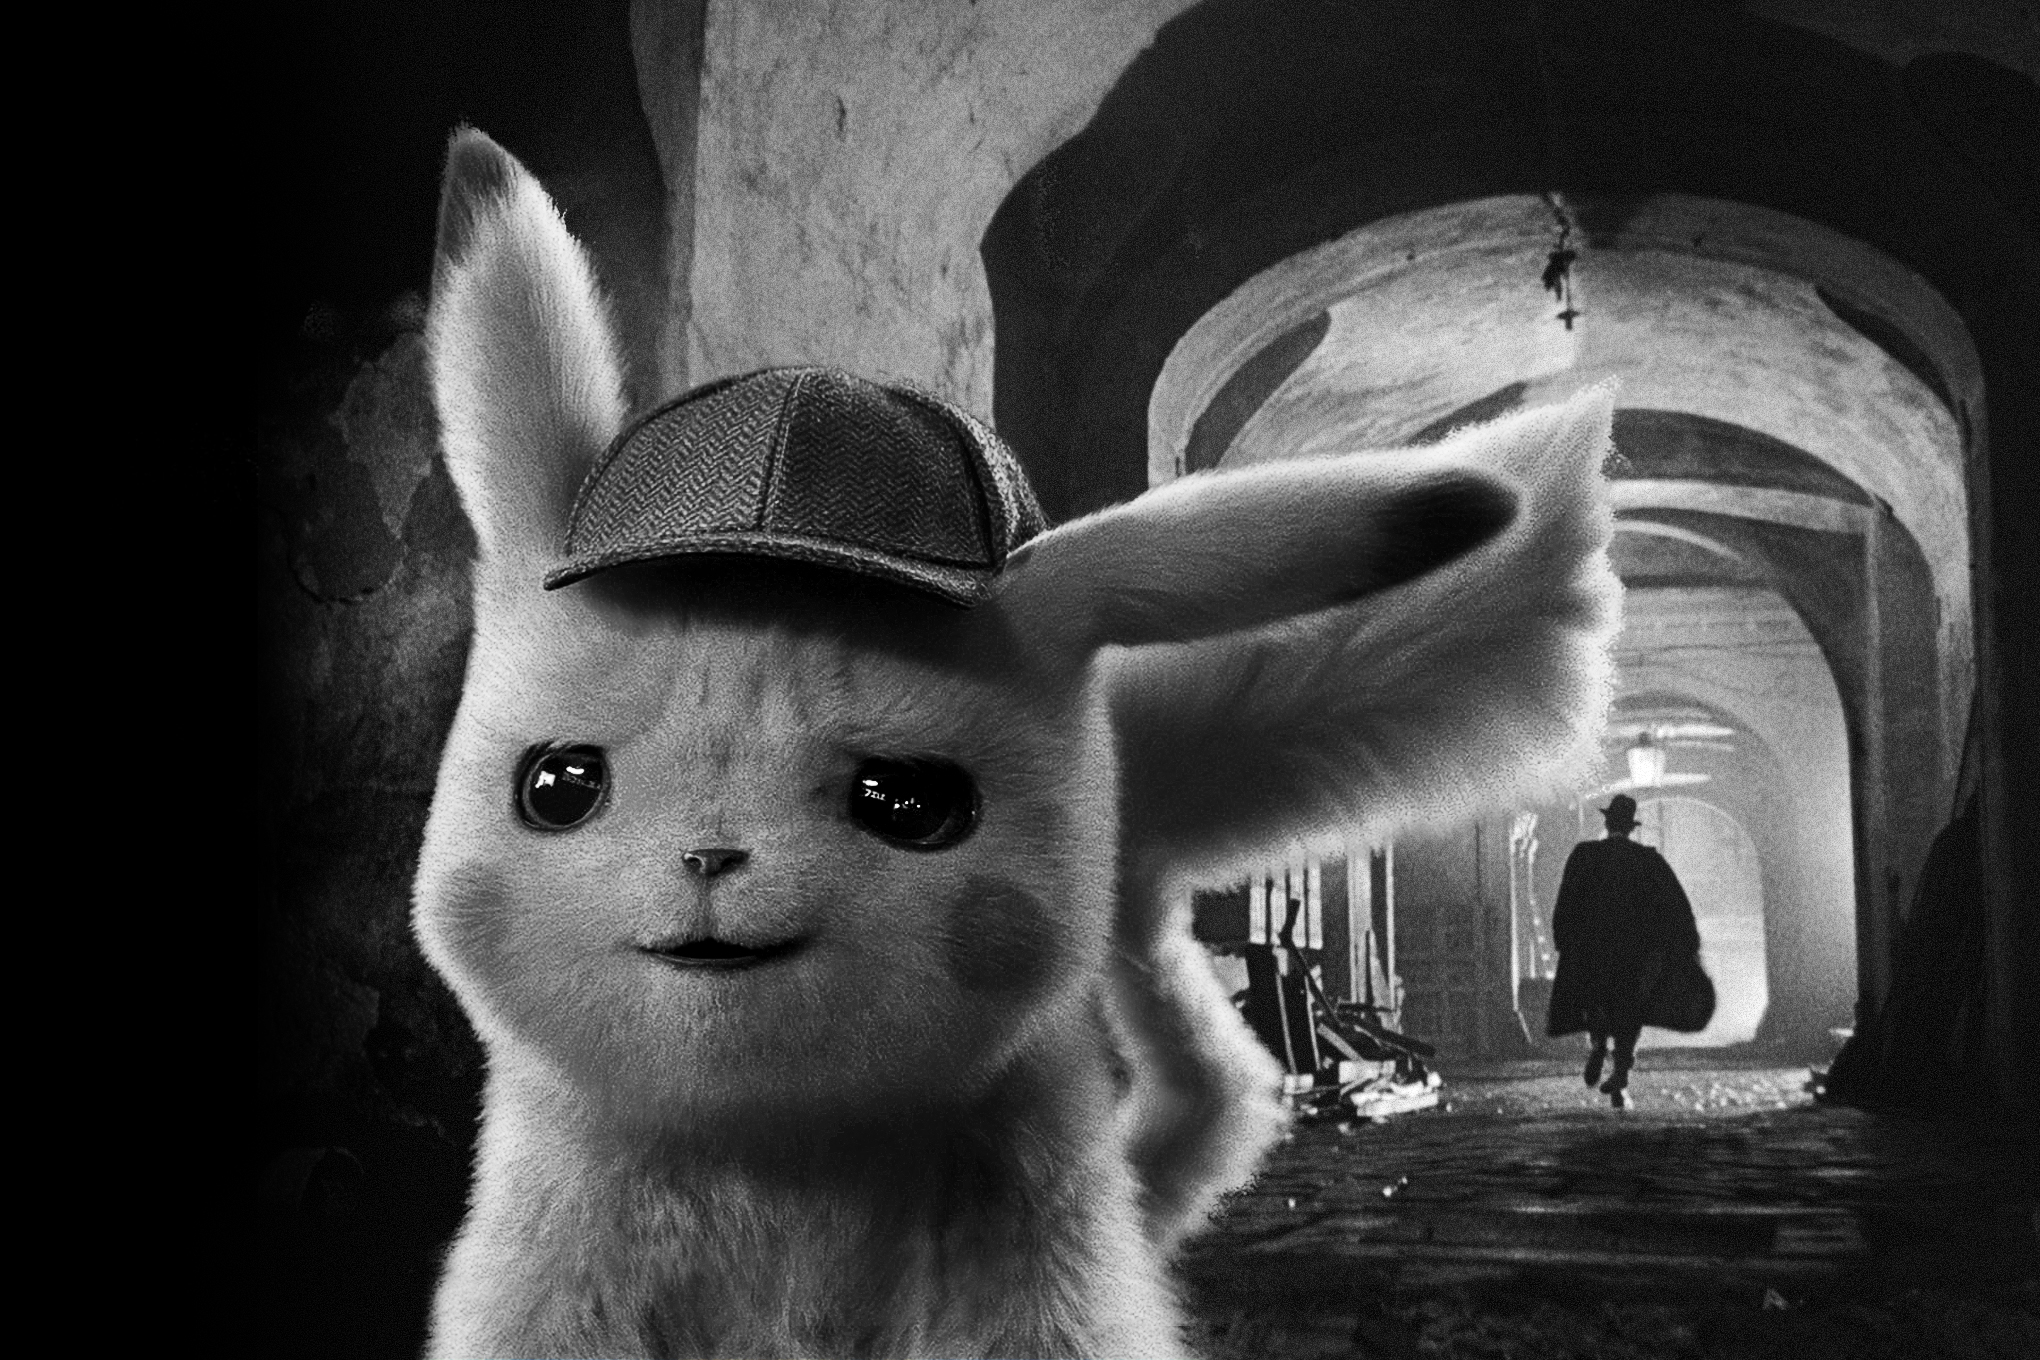 The classic noir that inspired Detective Pikachu's grittier side